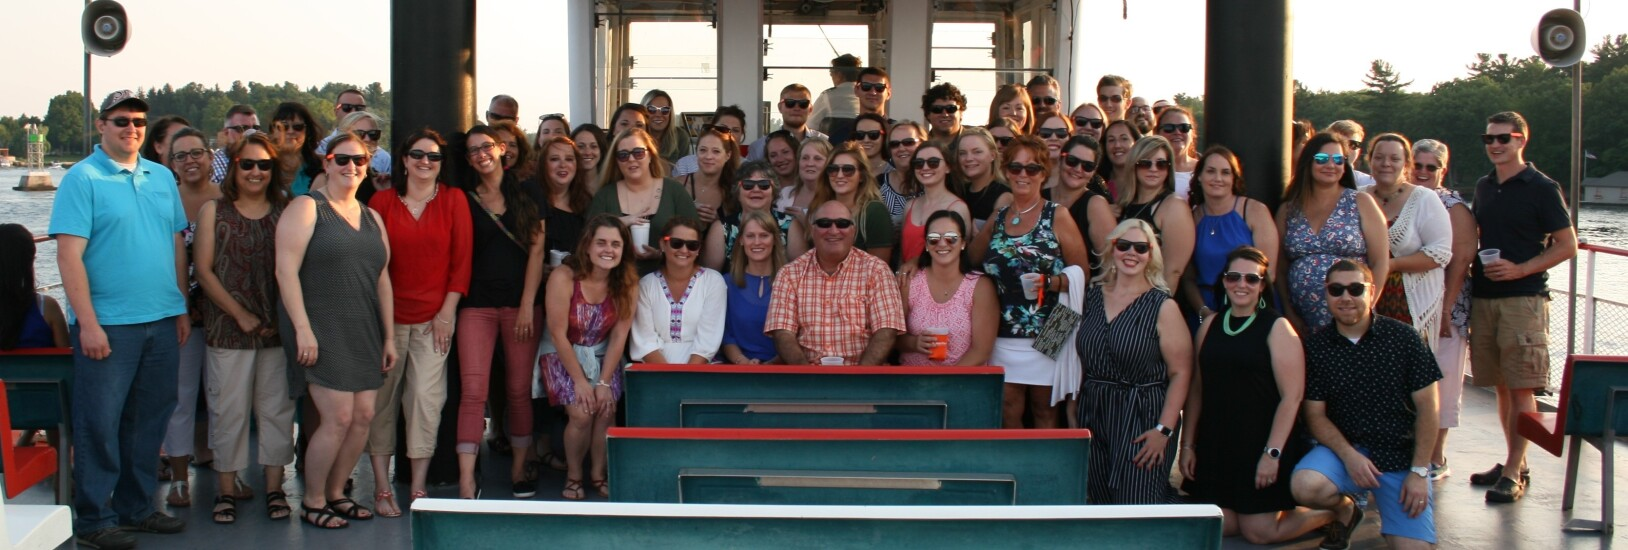 Northern Credit Union's senior management and staff enjoy a summer boat cruise.